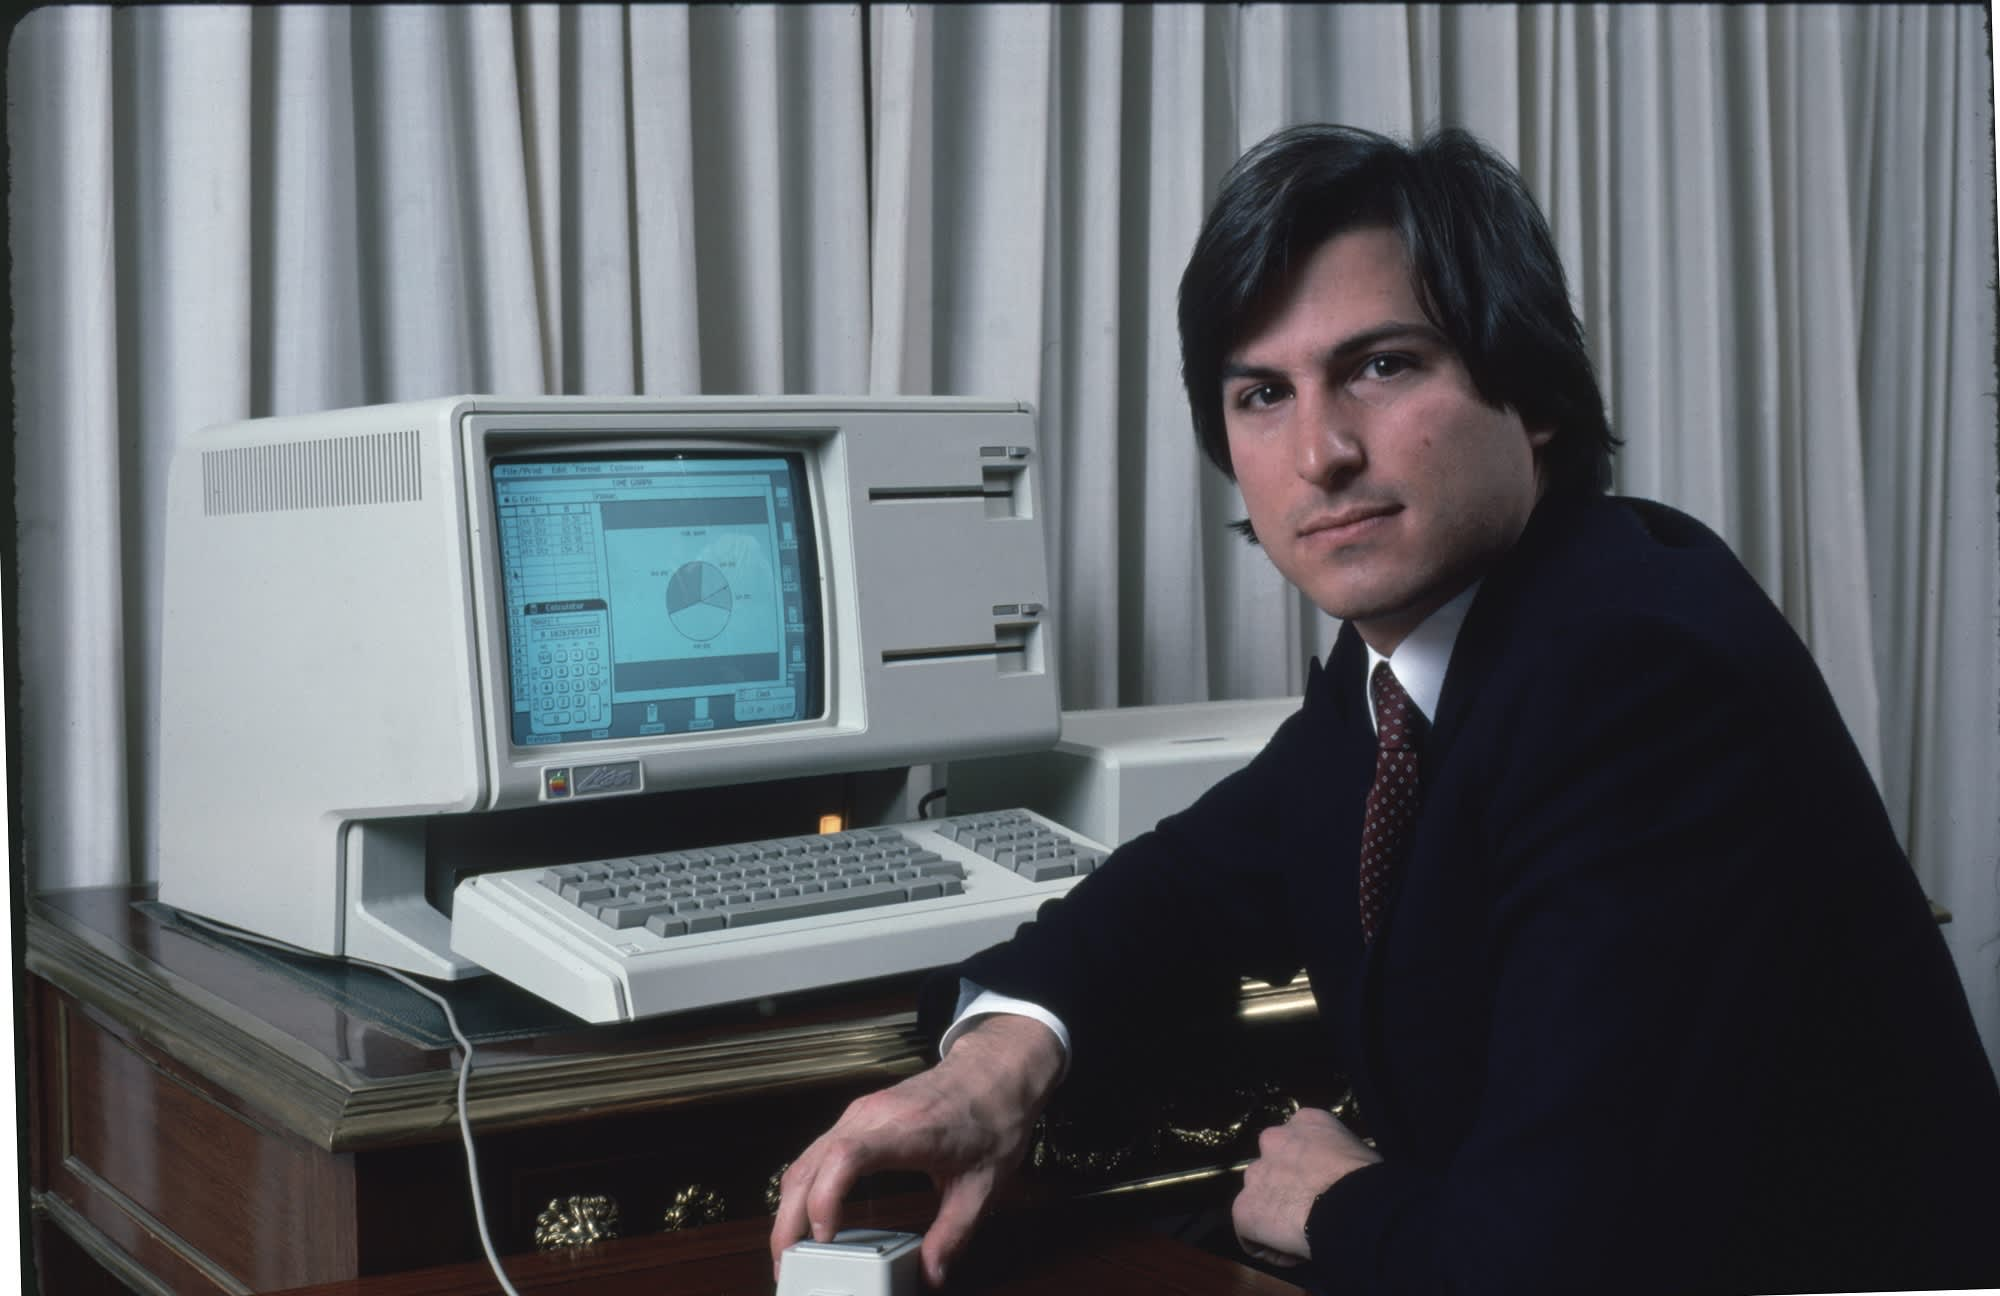 Apple co-founder Steve Jobs\' accurate predictions about future of tech